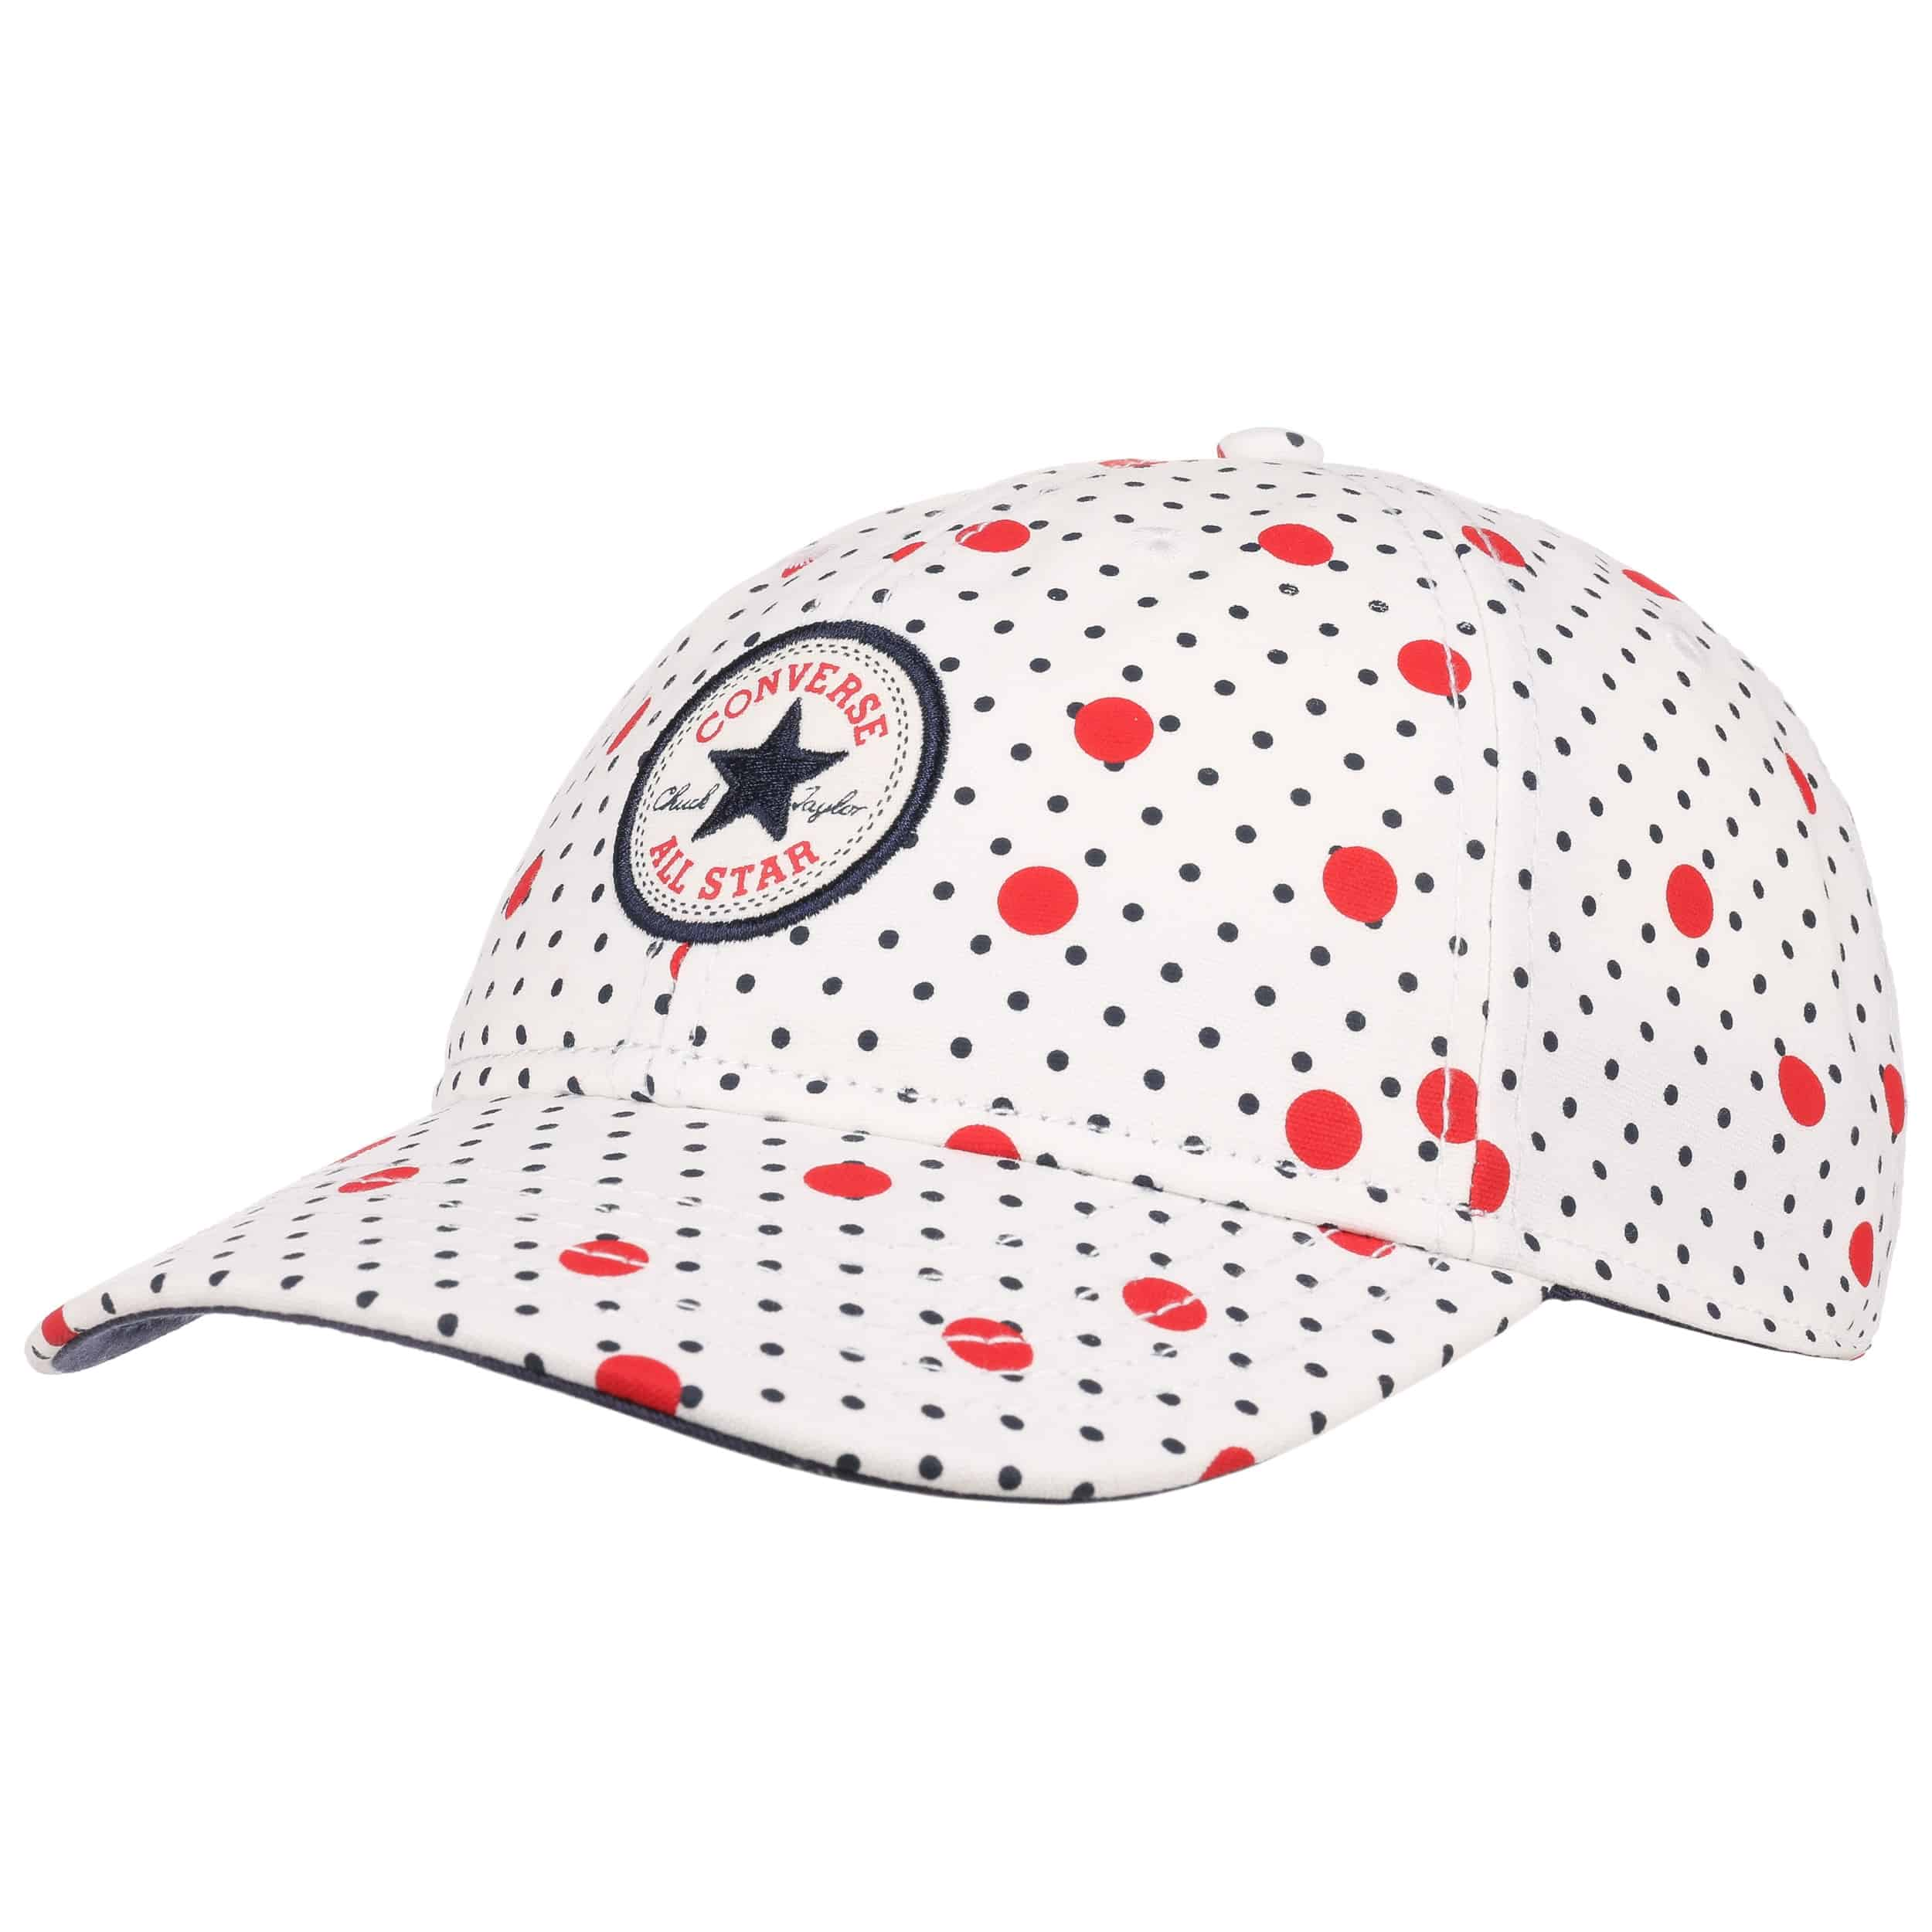 091222a341 ... Cappellino Seasonal Graphic by Converse - bianco 5